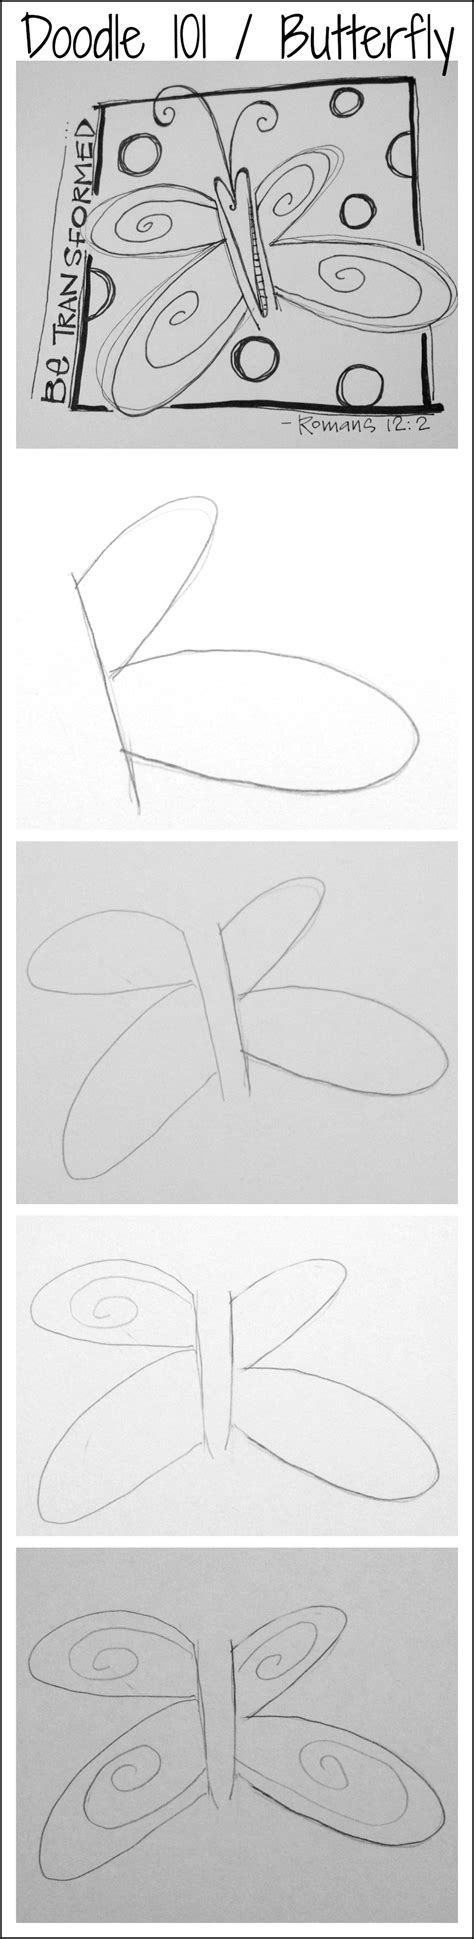 doodle god how to create butterfly doodle 101 the butterfly 1arthouse